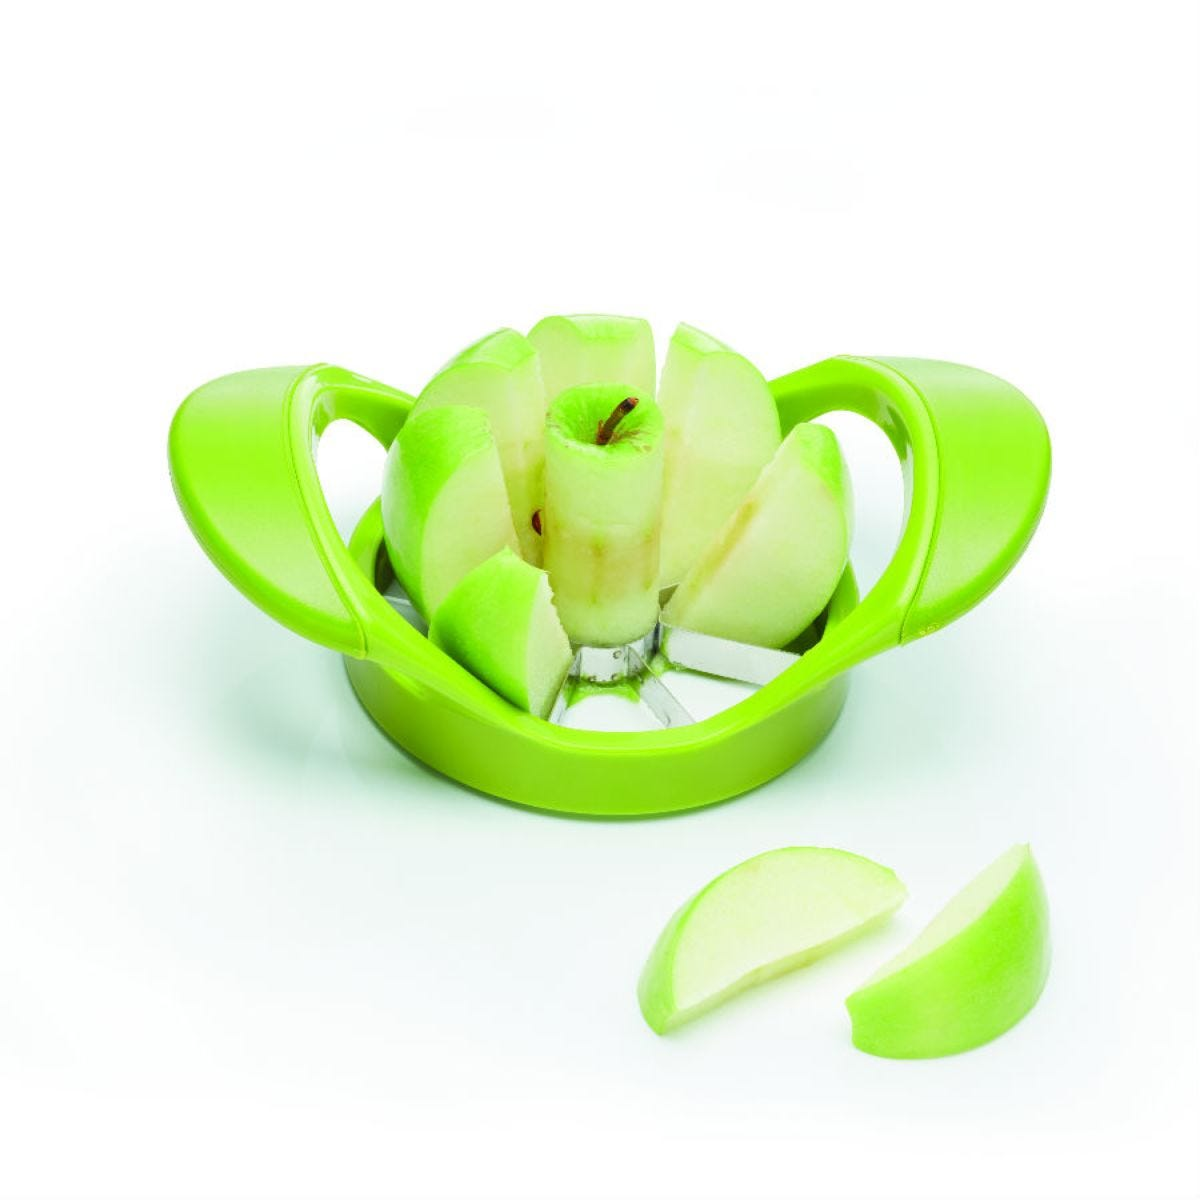 KitchenCraft 2-in-1 Apple Corer & Wedger